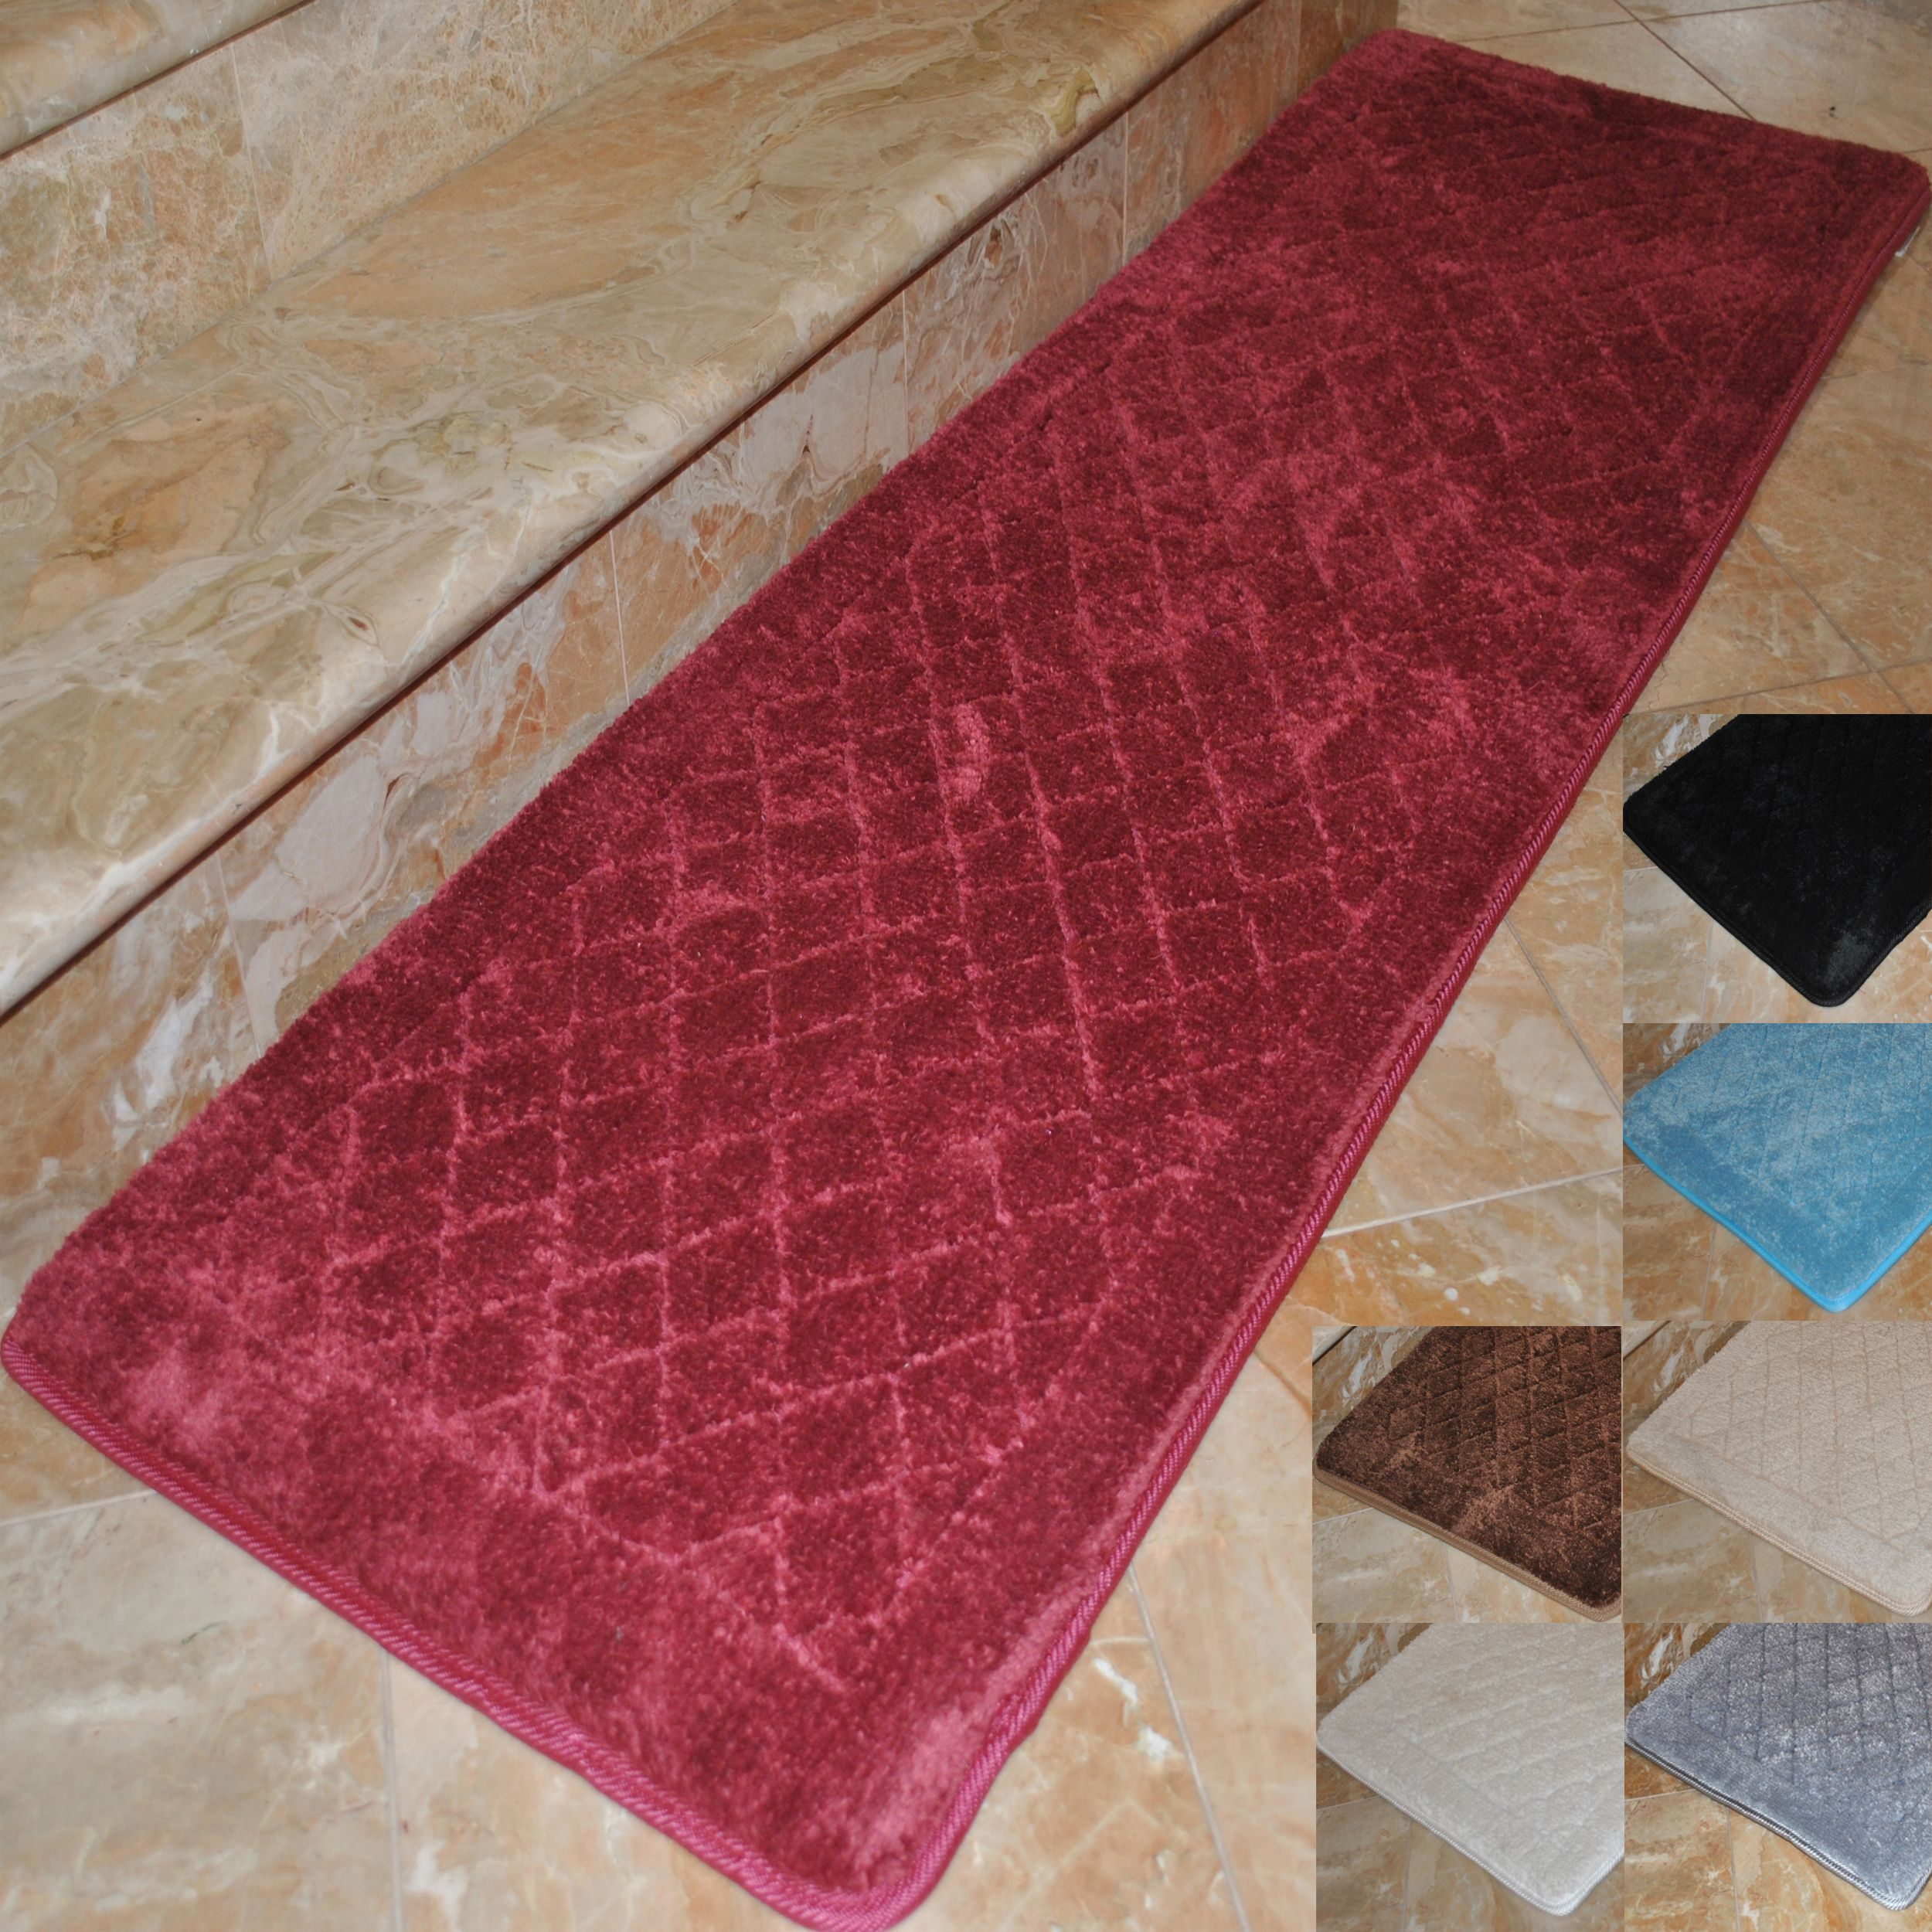 Can Bathroom Rugs Go In The Dryer: Step Into Plush Comfort When You Add This Extra-long